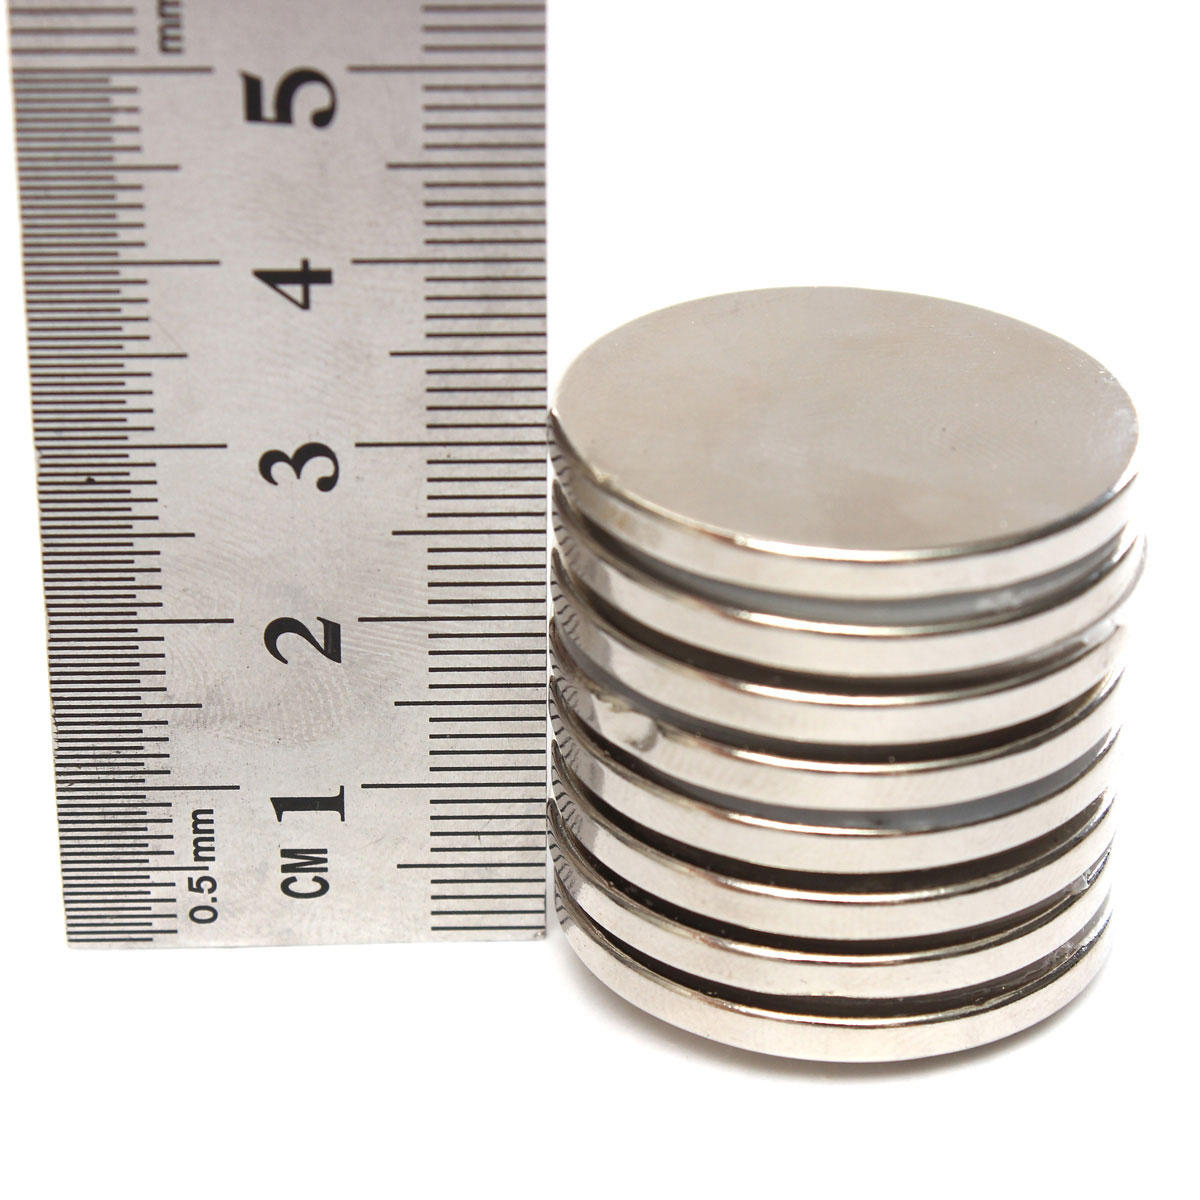 20pcs N50 15x4mm Strong Round Neodymium Magnets 4mm Hole Countersunk Ring Magnet - 4